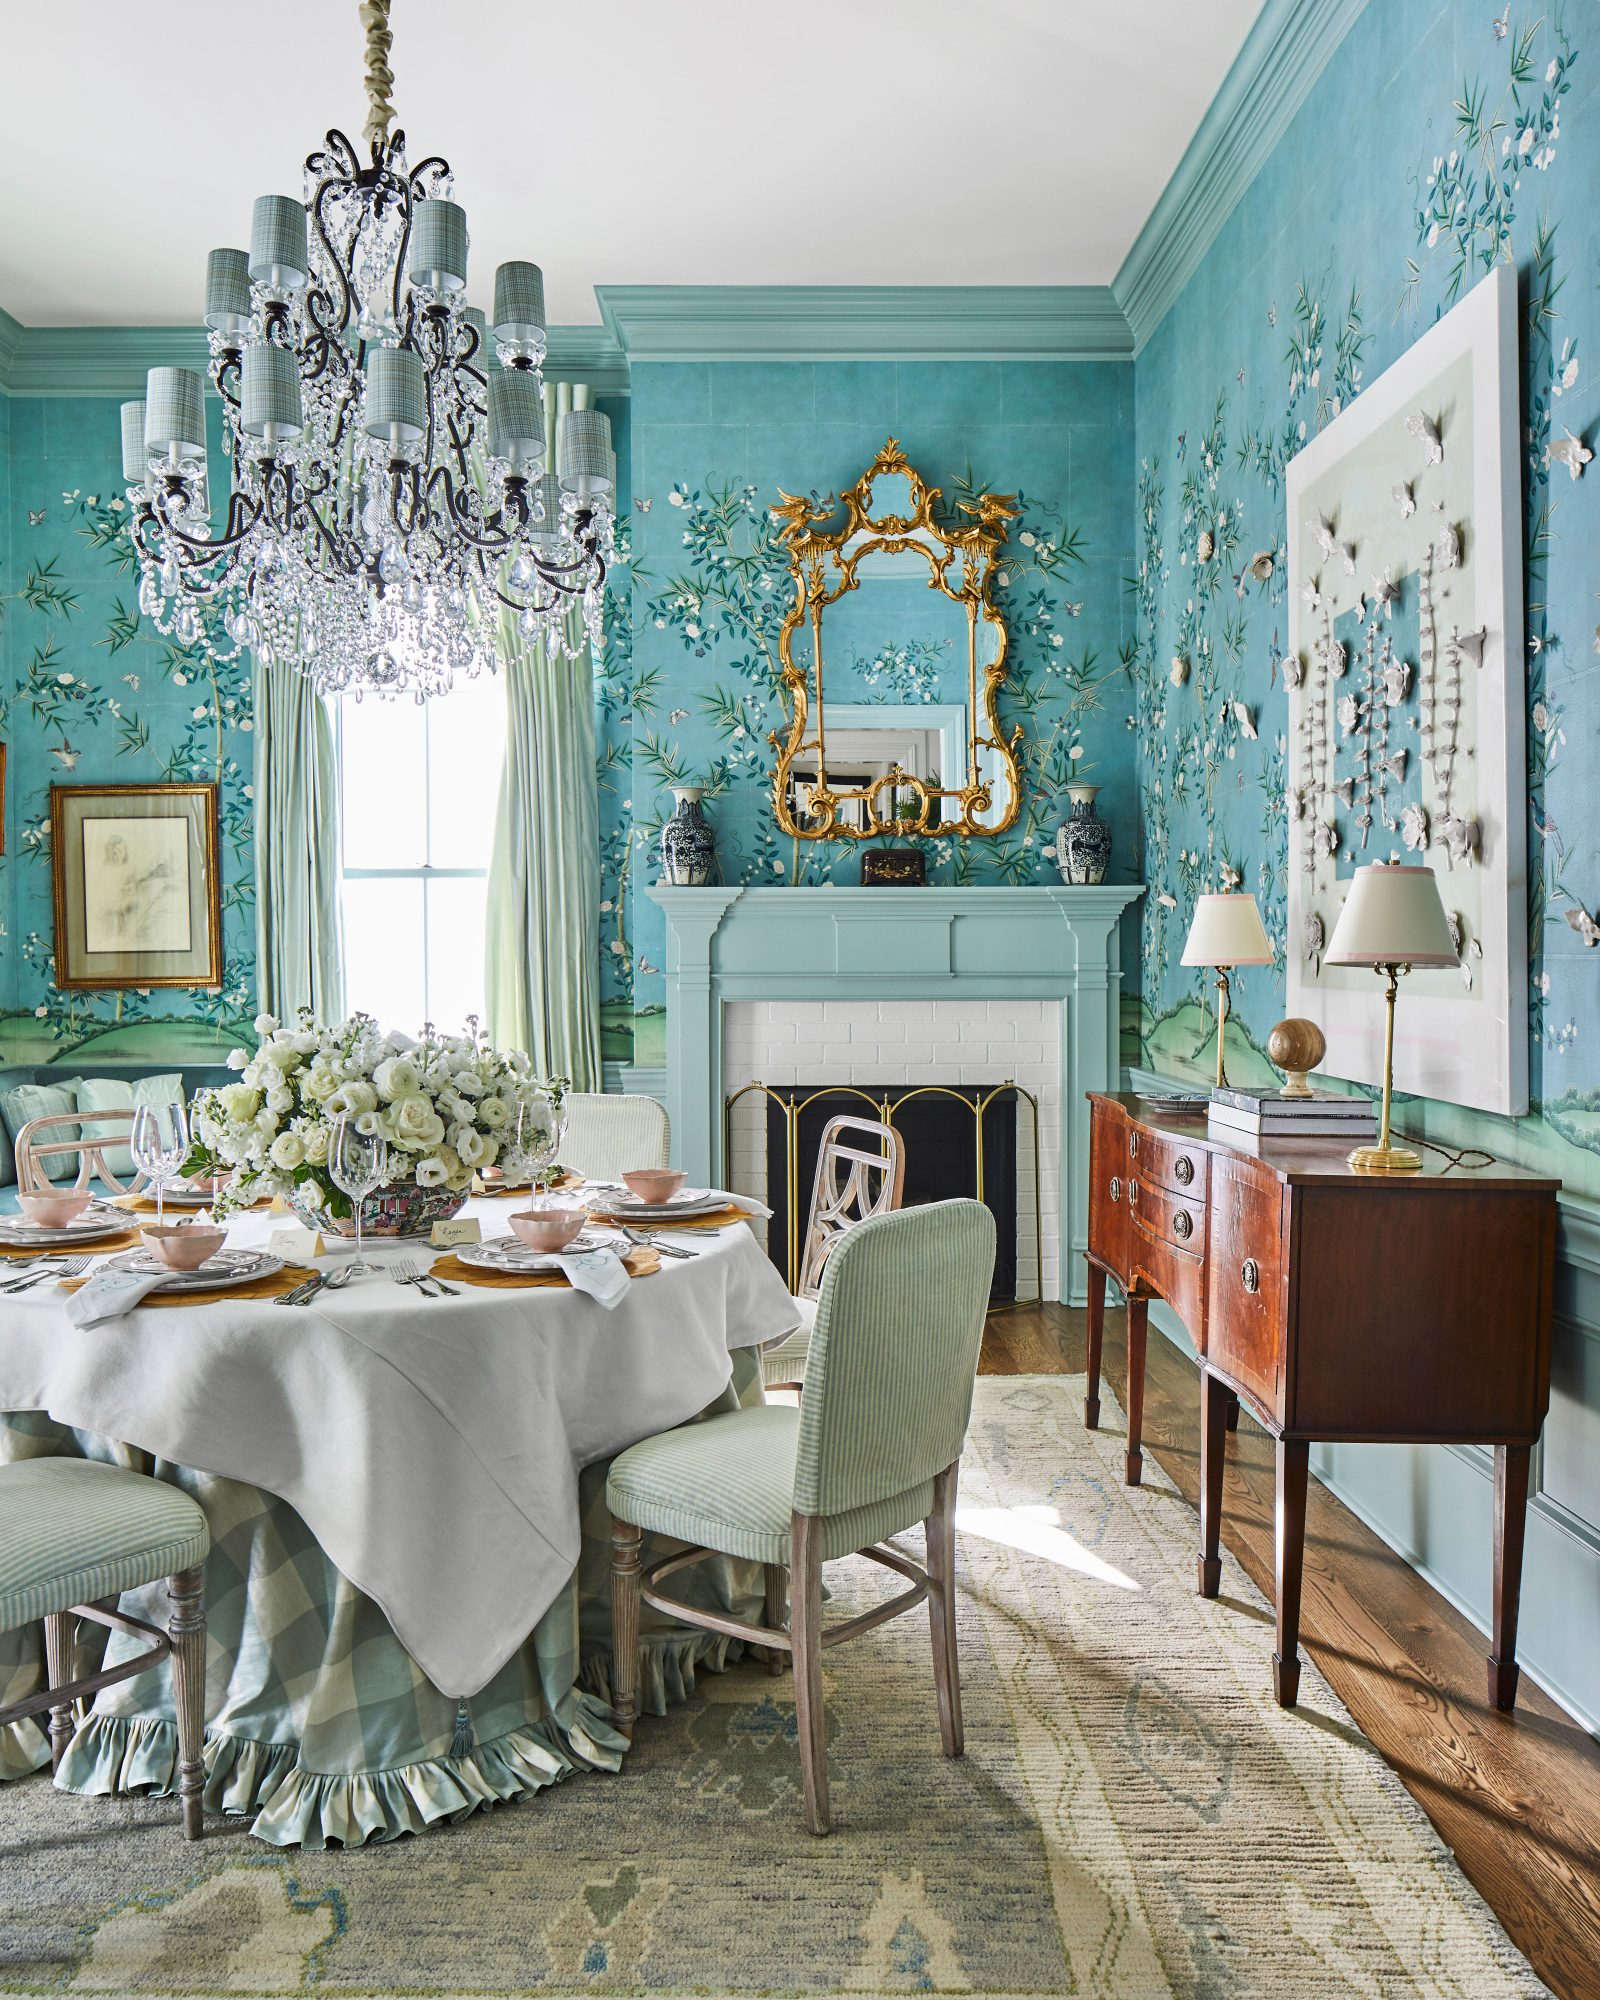 Blue Formal Dining Room with Skirted Table, Crystal Chandelier, and Wallpaper